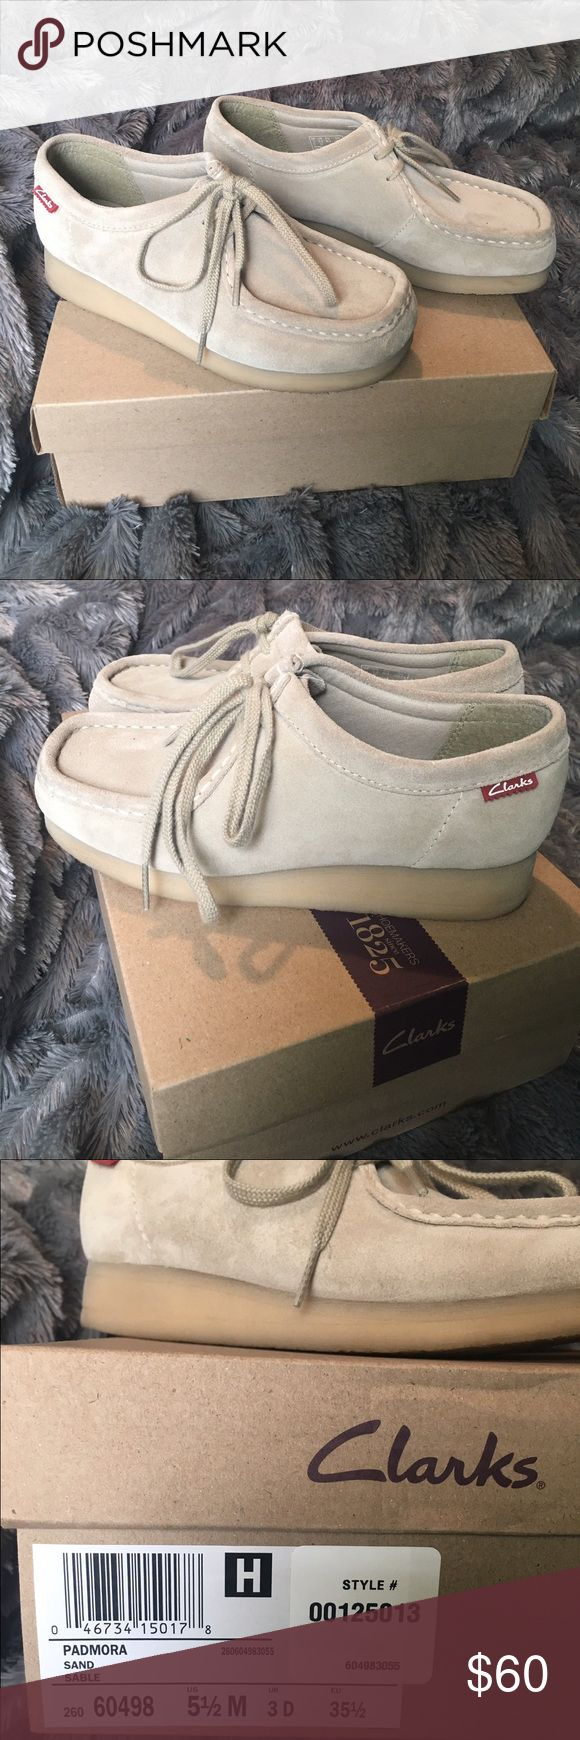 Clarks Wallabees Worn once  Clarks Shoes Moccasins